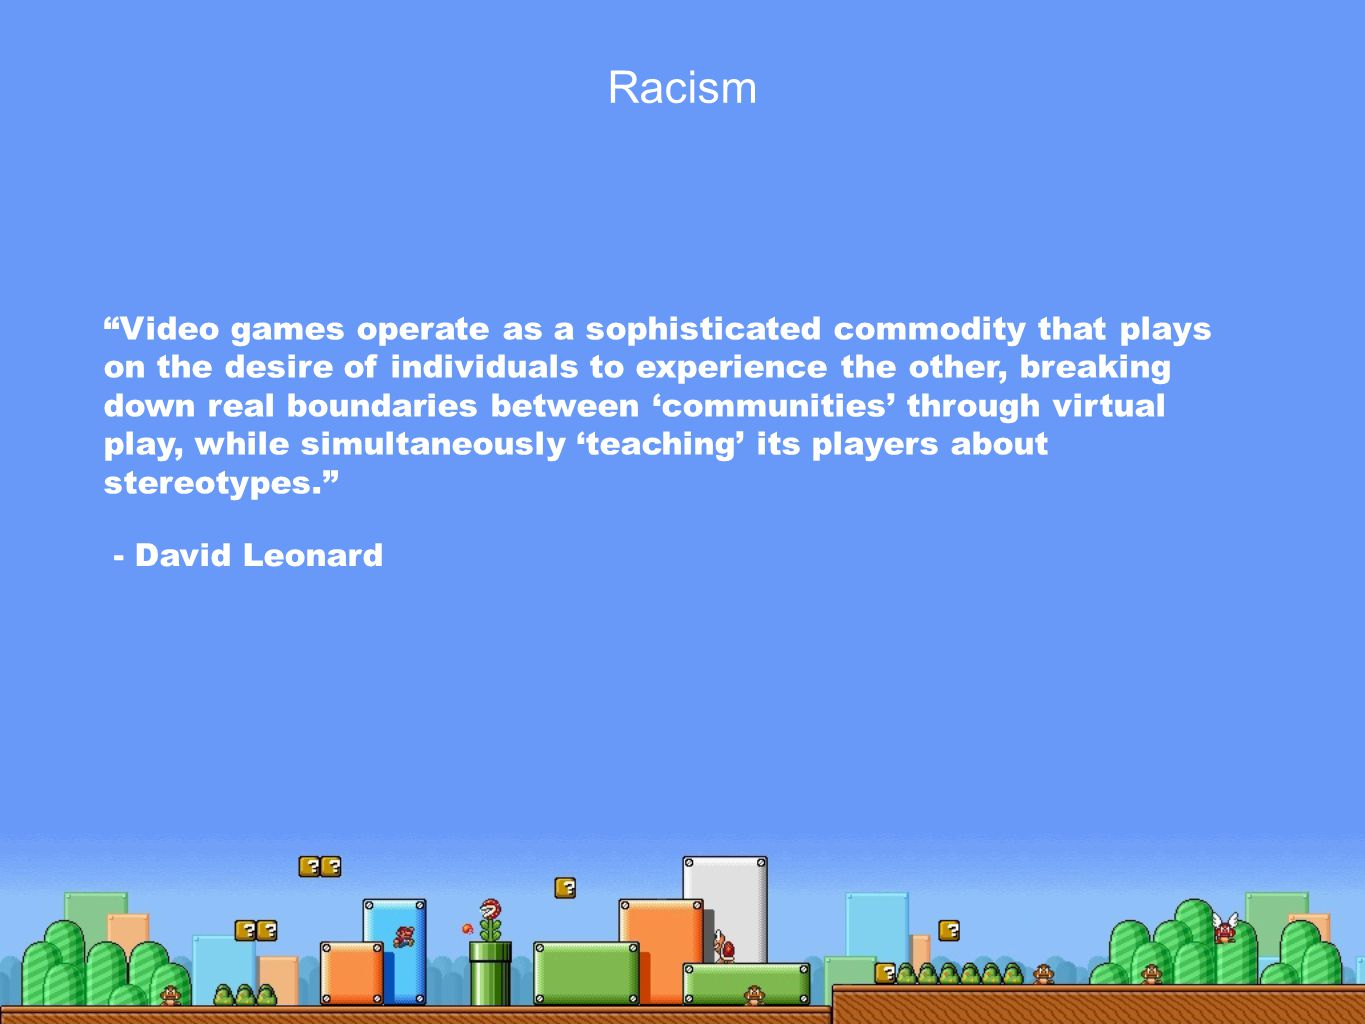 Video games operate as a sophisticated commodity that plays on the desire of individuals to experience the other, breaking down real boundaries between 'communities' through virtual play, while simultaneously 'teaching' its players about stereotypes. - David Leonard Racism